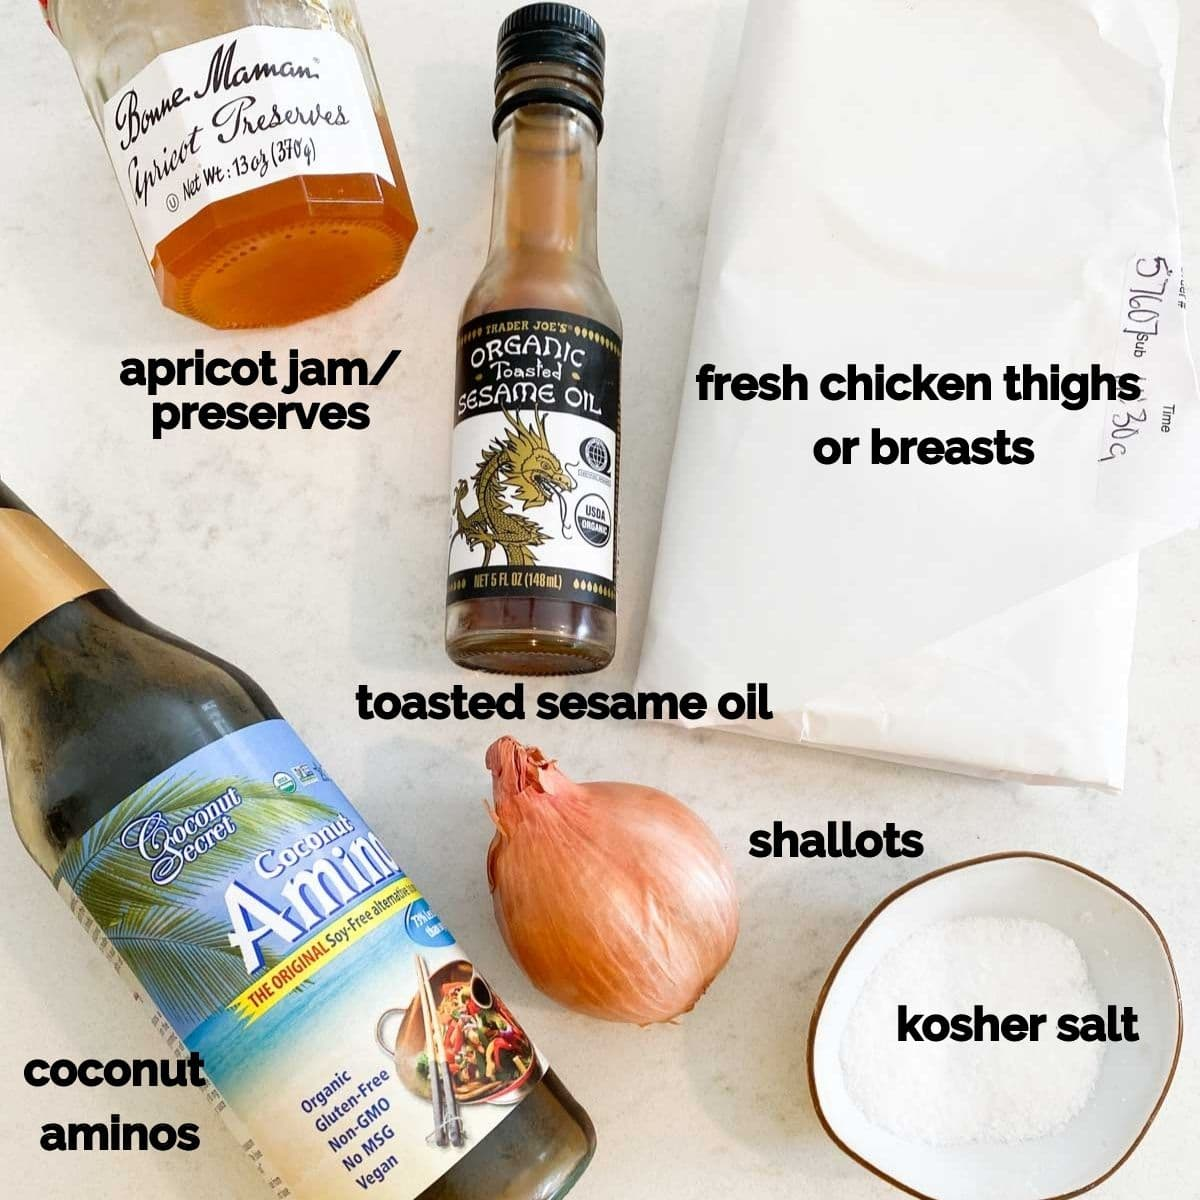 The ingredients needed for this recipe all laid out on a white marble table.